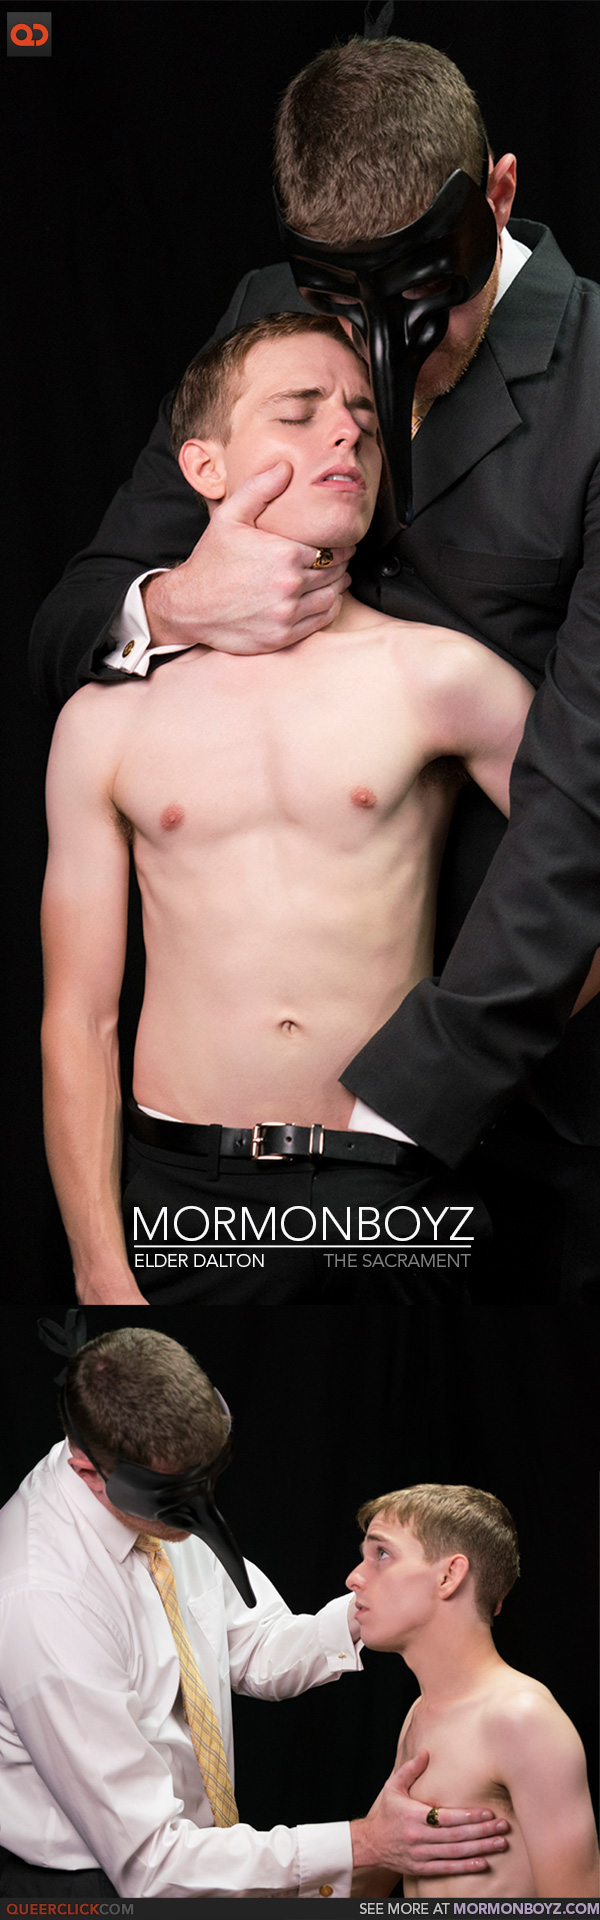 Mormon Boyz: Elder Dalton - The Sacrament